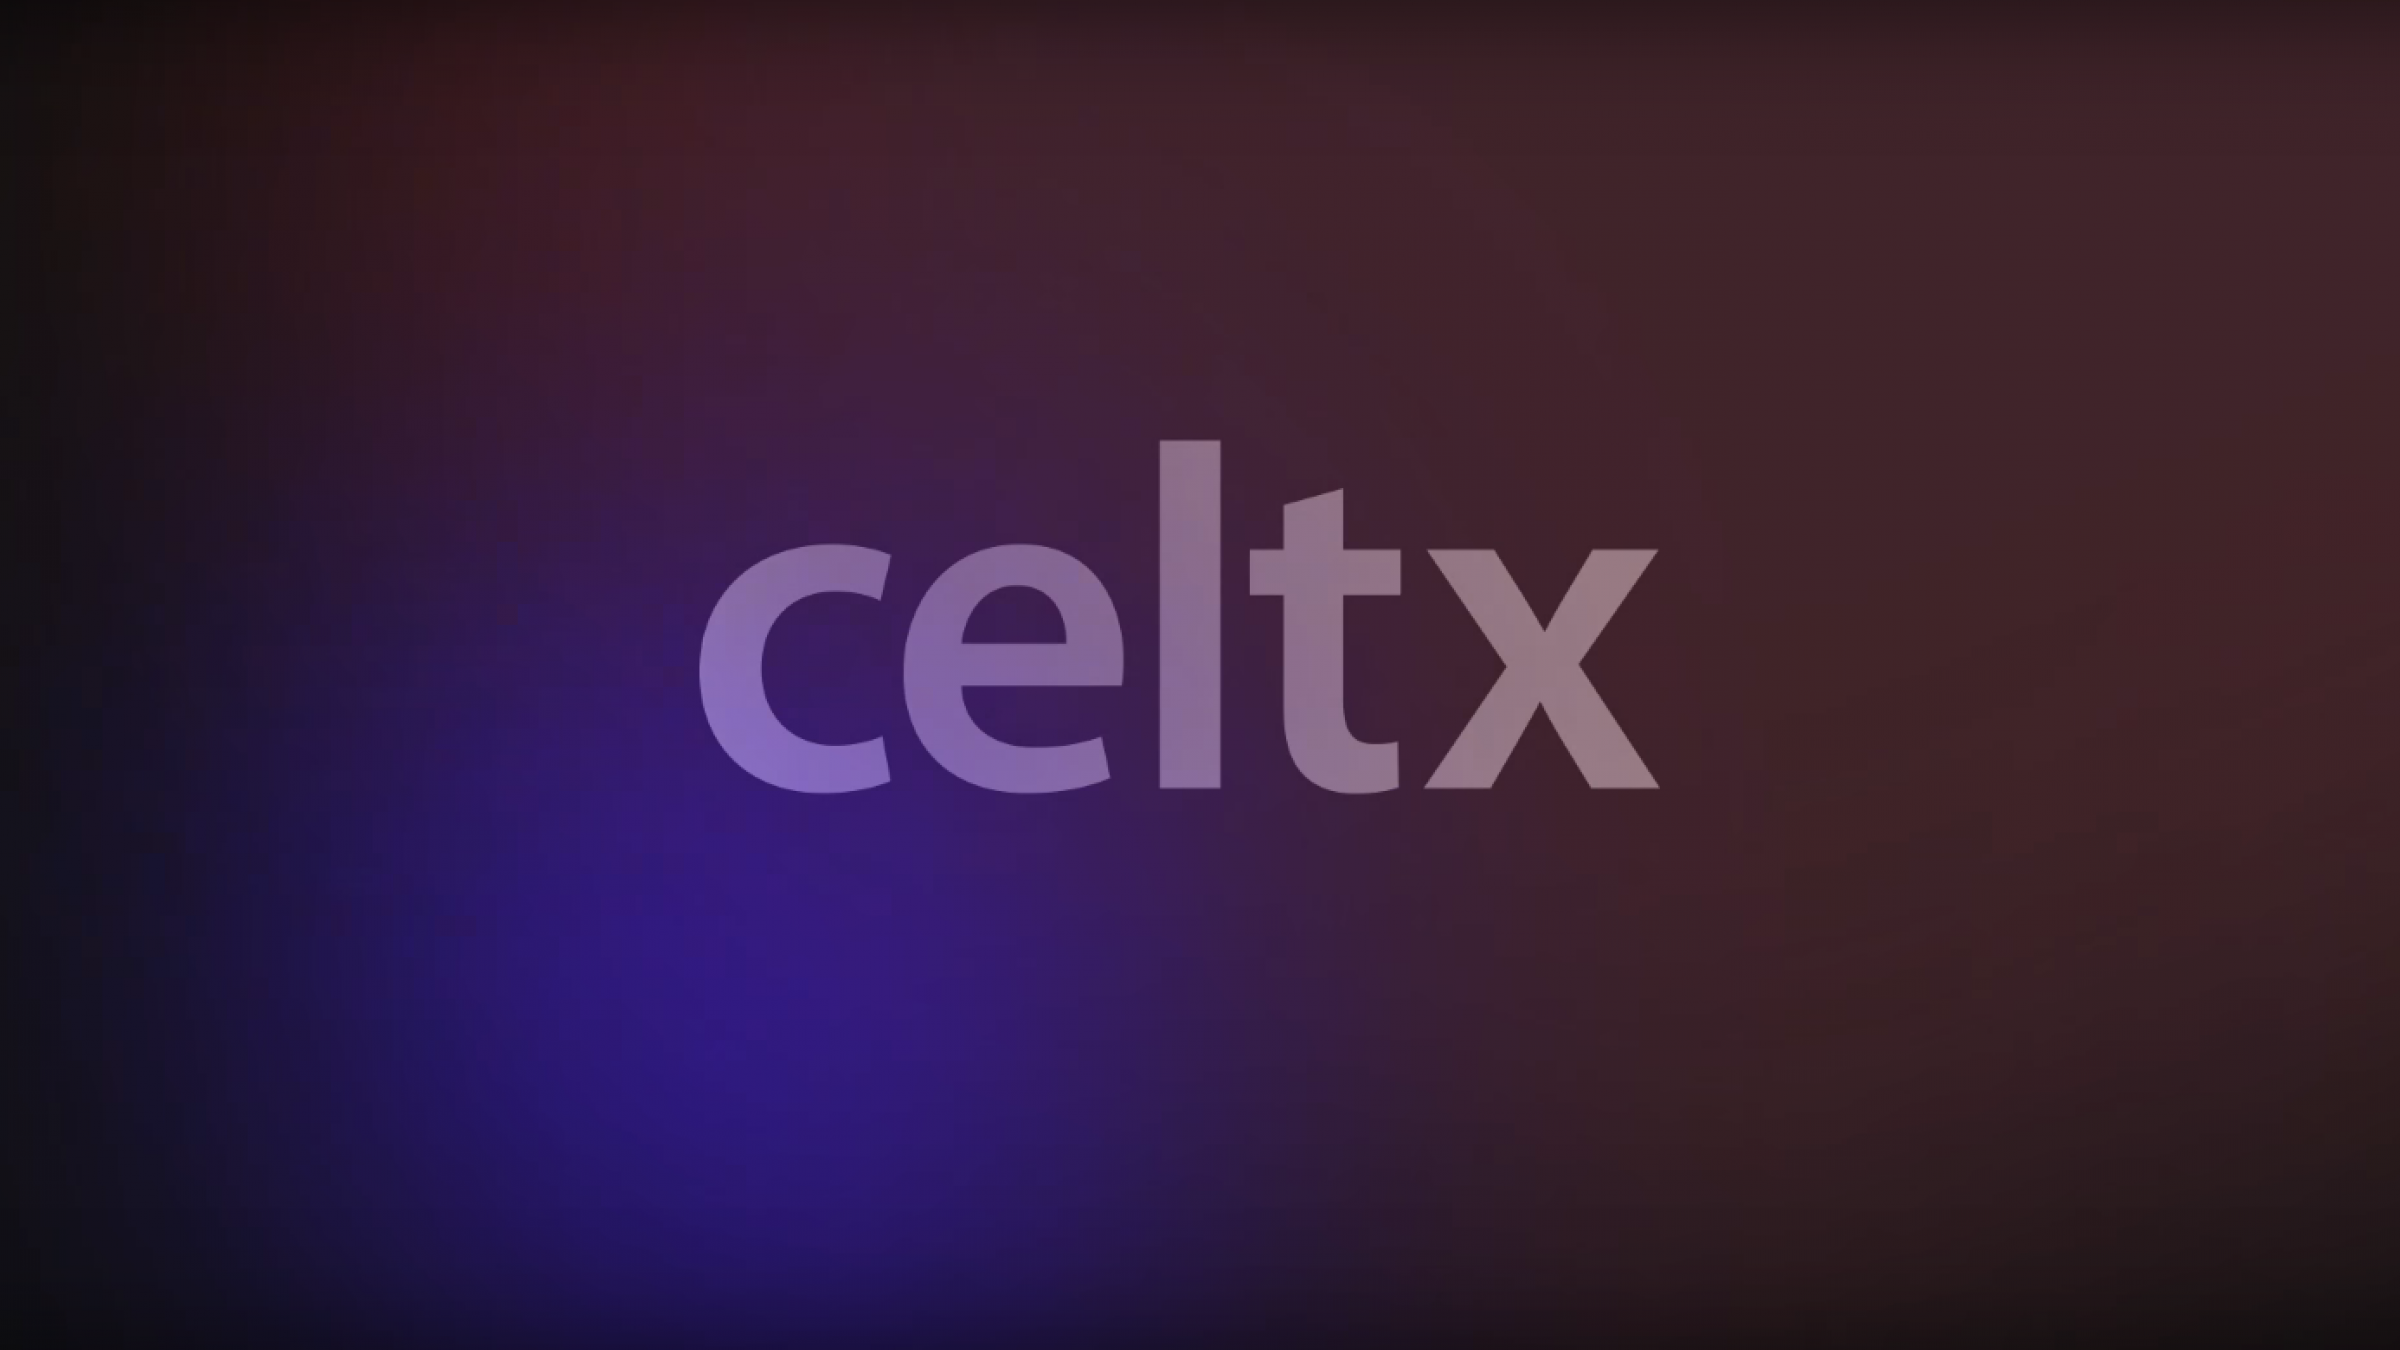 Celtx is Now an All-in-One Video & Movie Planning System